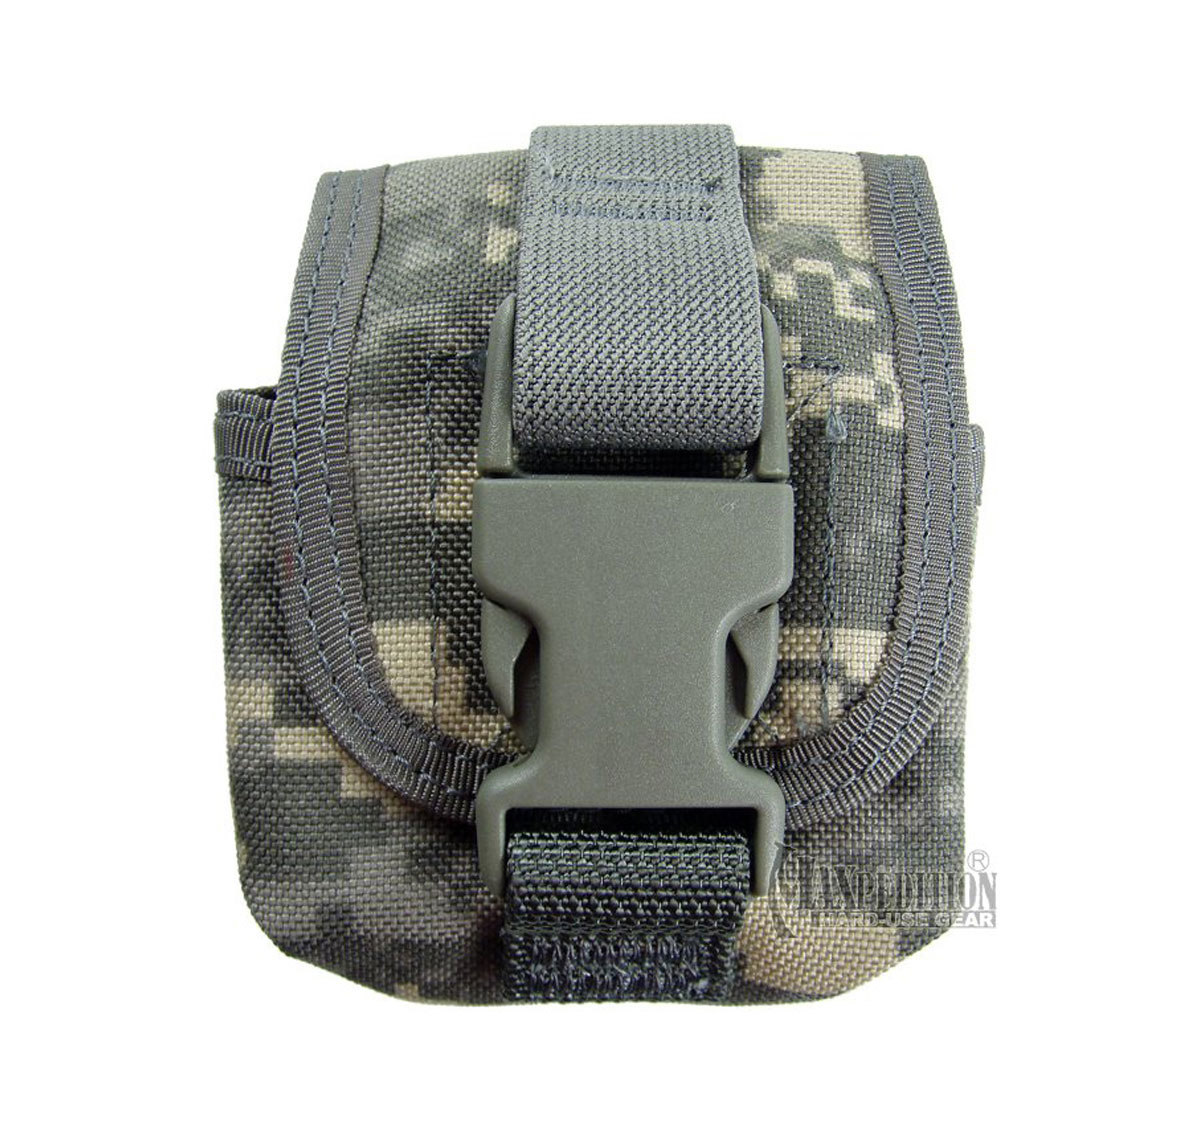 Maxpedition Single Frag Grenade Pouch  (MAXPEDITION-1435)